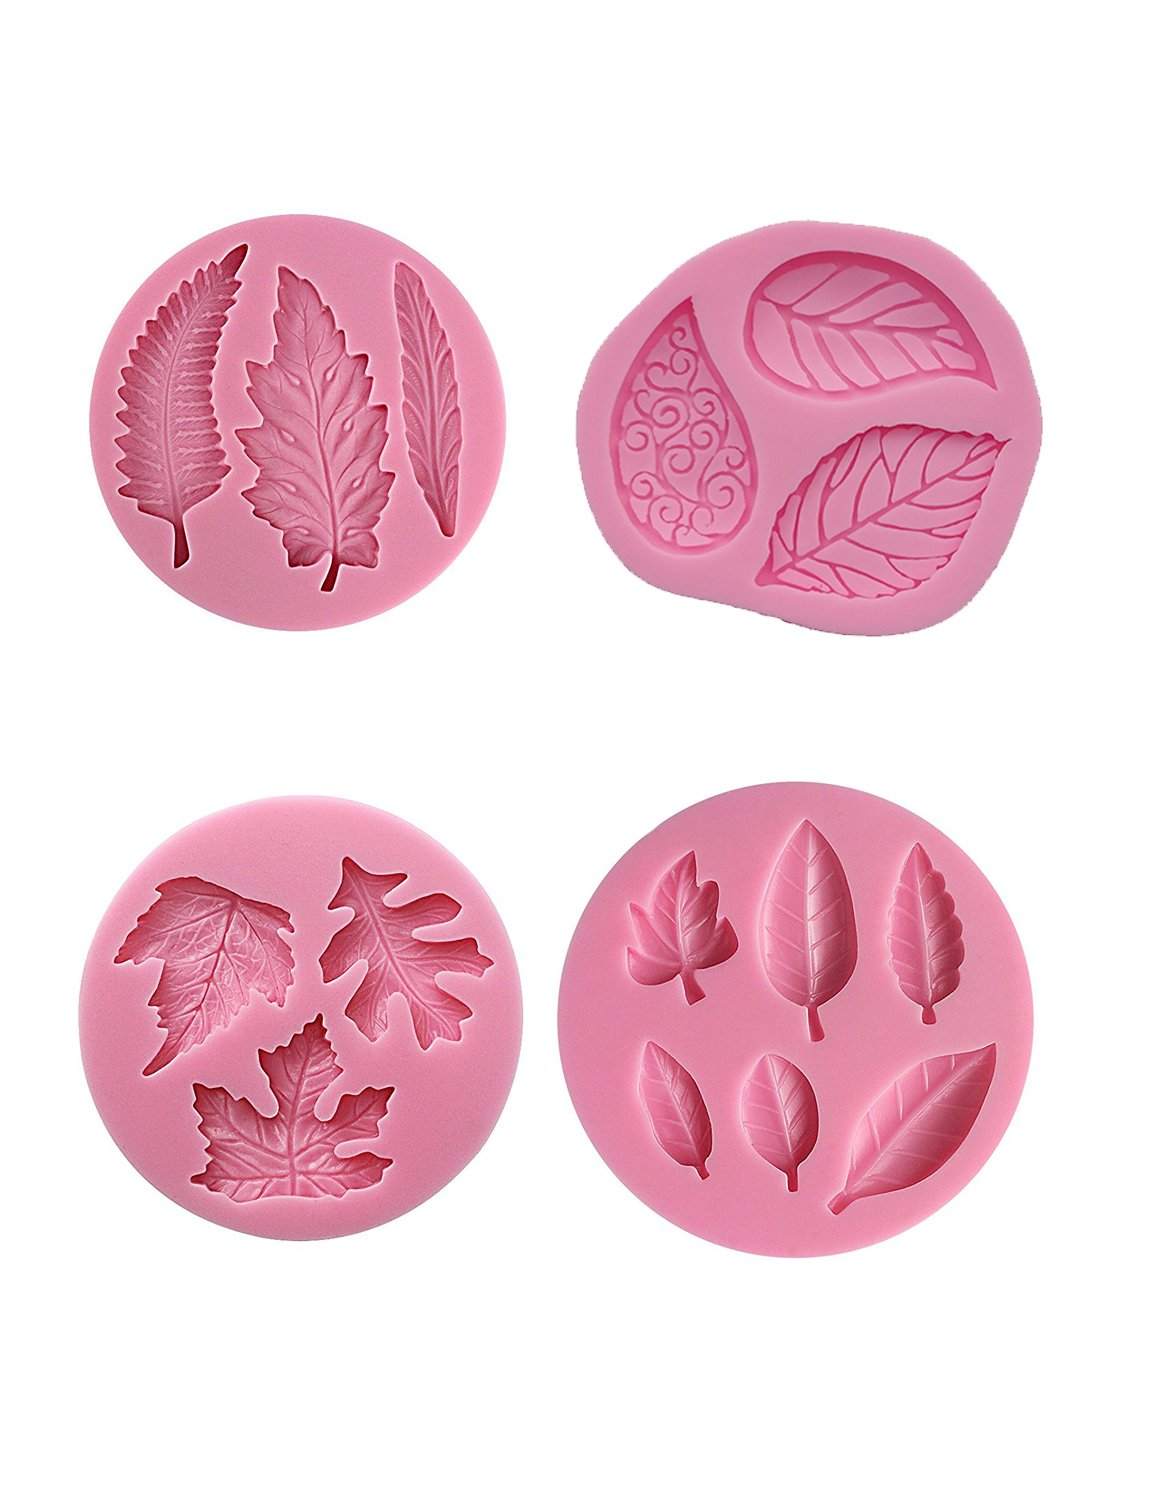 Sharlity 4Pcs Assorted Leaf Silicone Candy Mold for Sugarcraft Chocolate Fondant Resin Polymer Clay